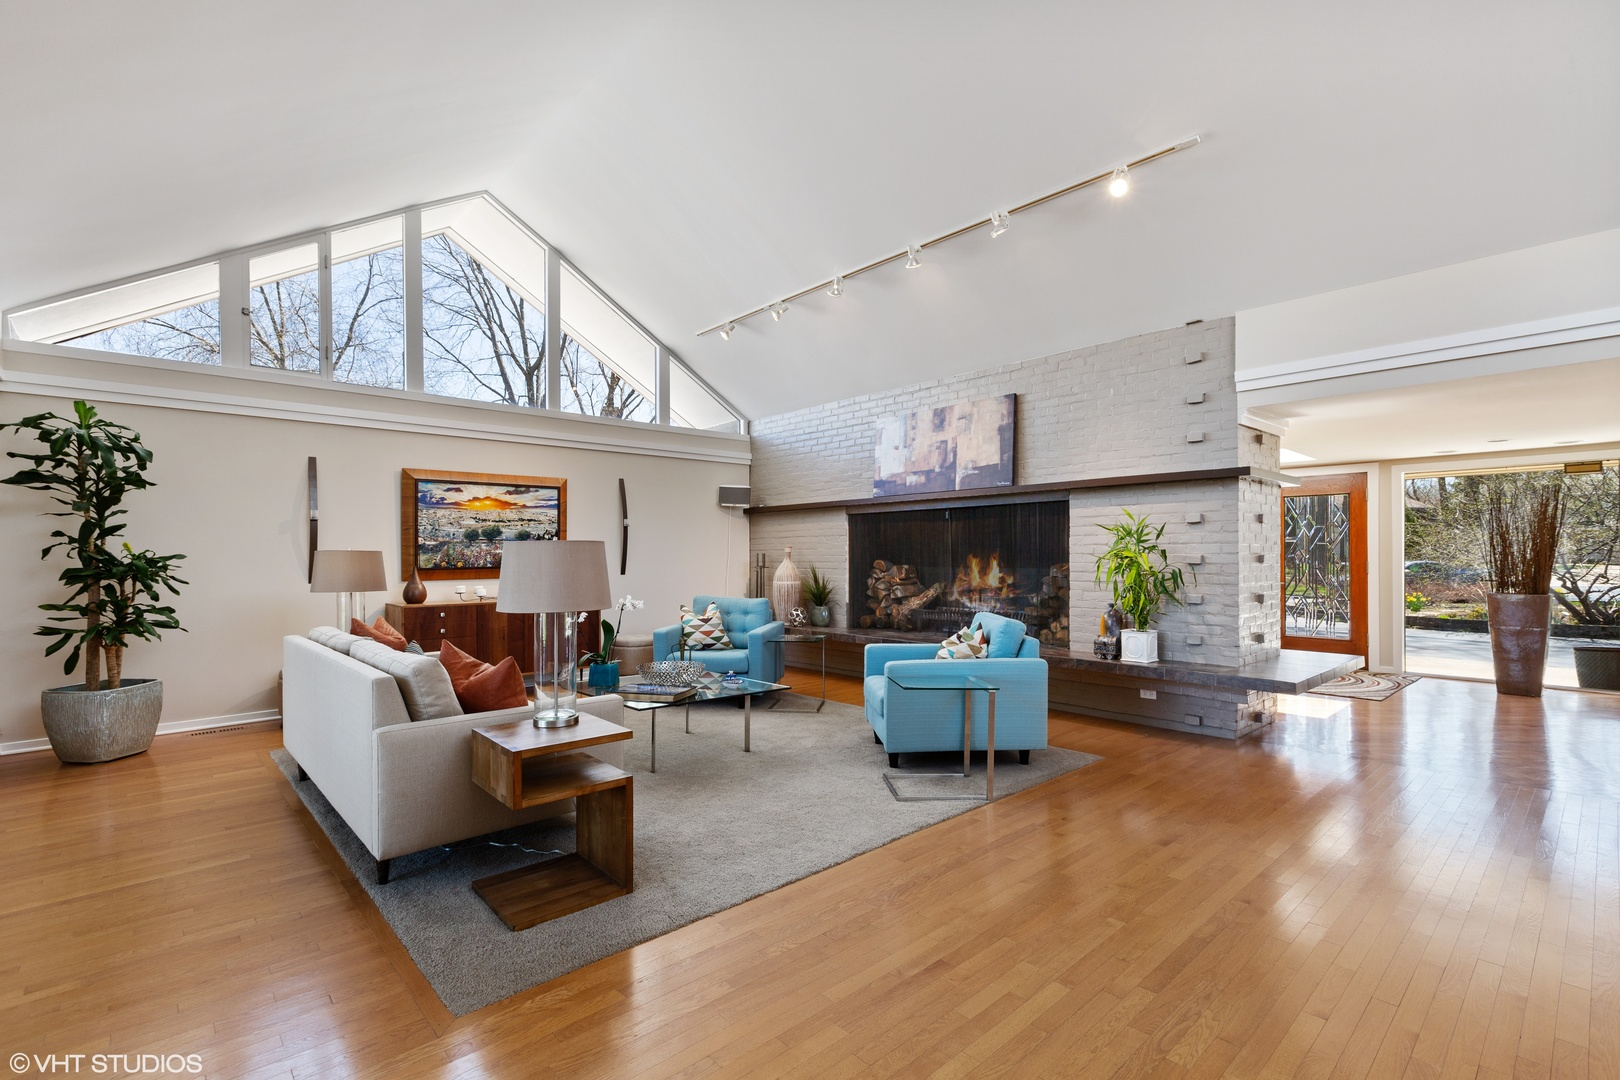 To schedule a private showing, call Lou Zucaro at 312.907.4085 or send an email to lou@modernil.com